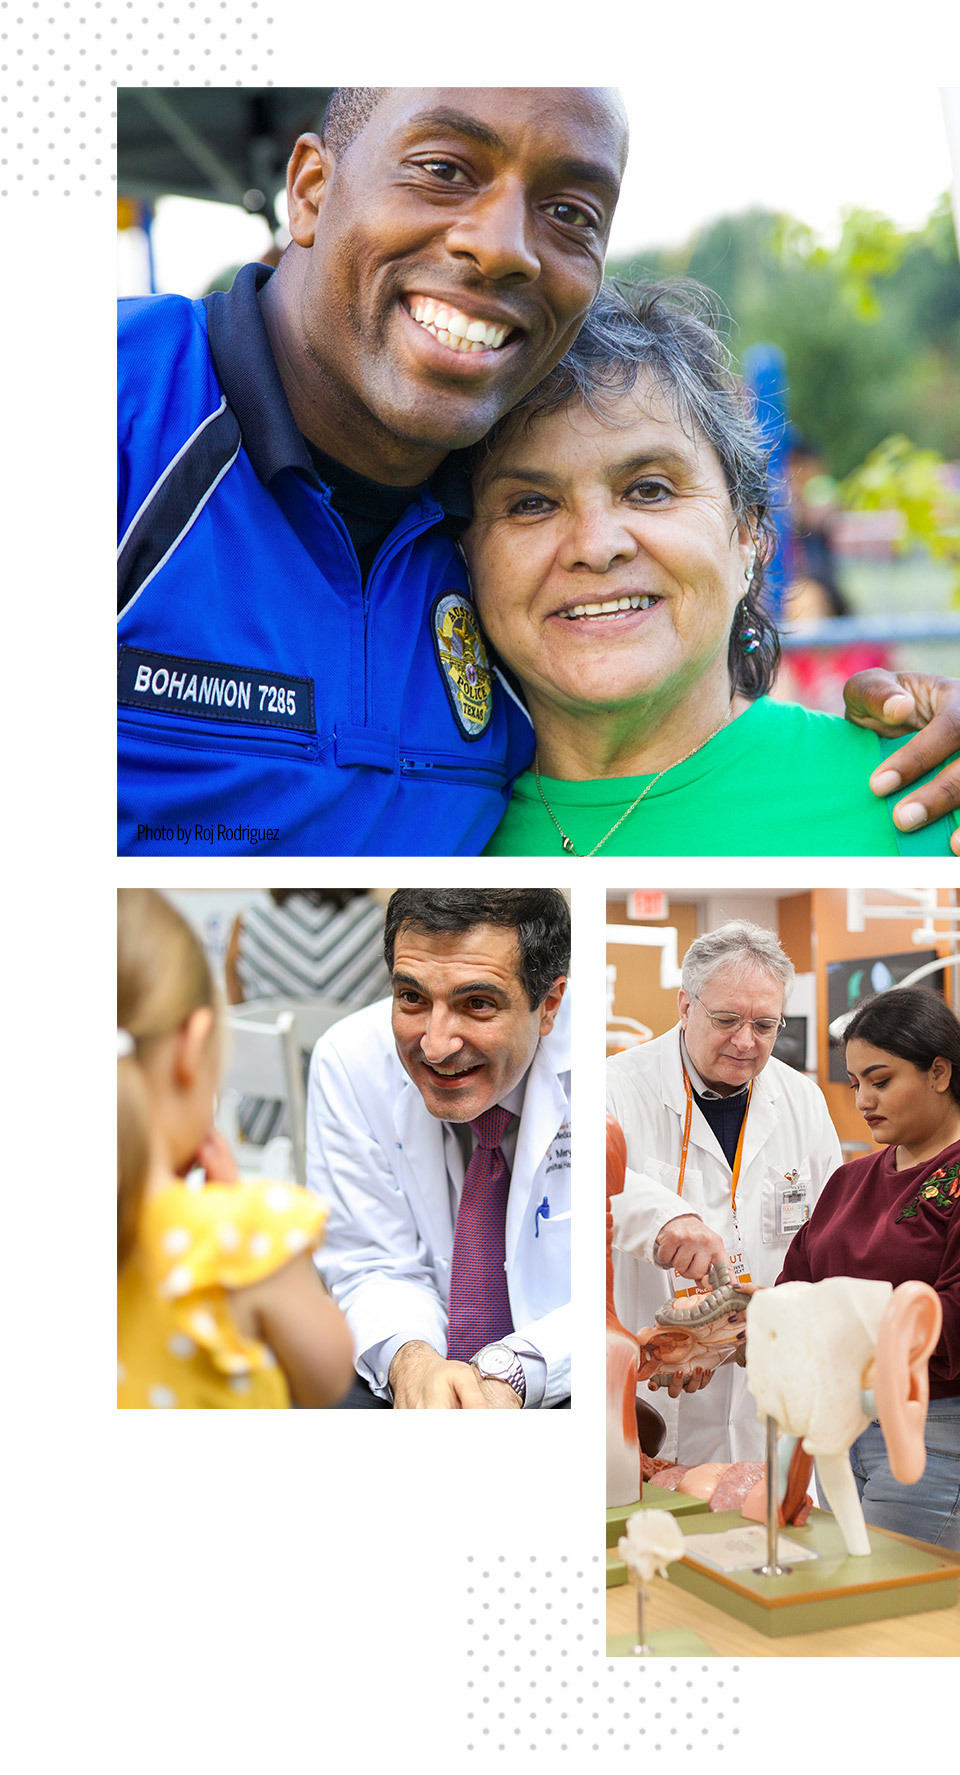 Collage of a photo of a security officer with a woman, a photo of a doctor with a patient and a third of a doctor with a medical student.